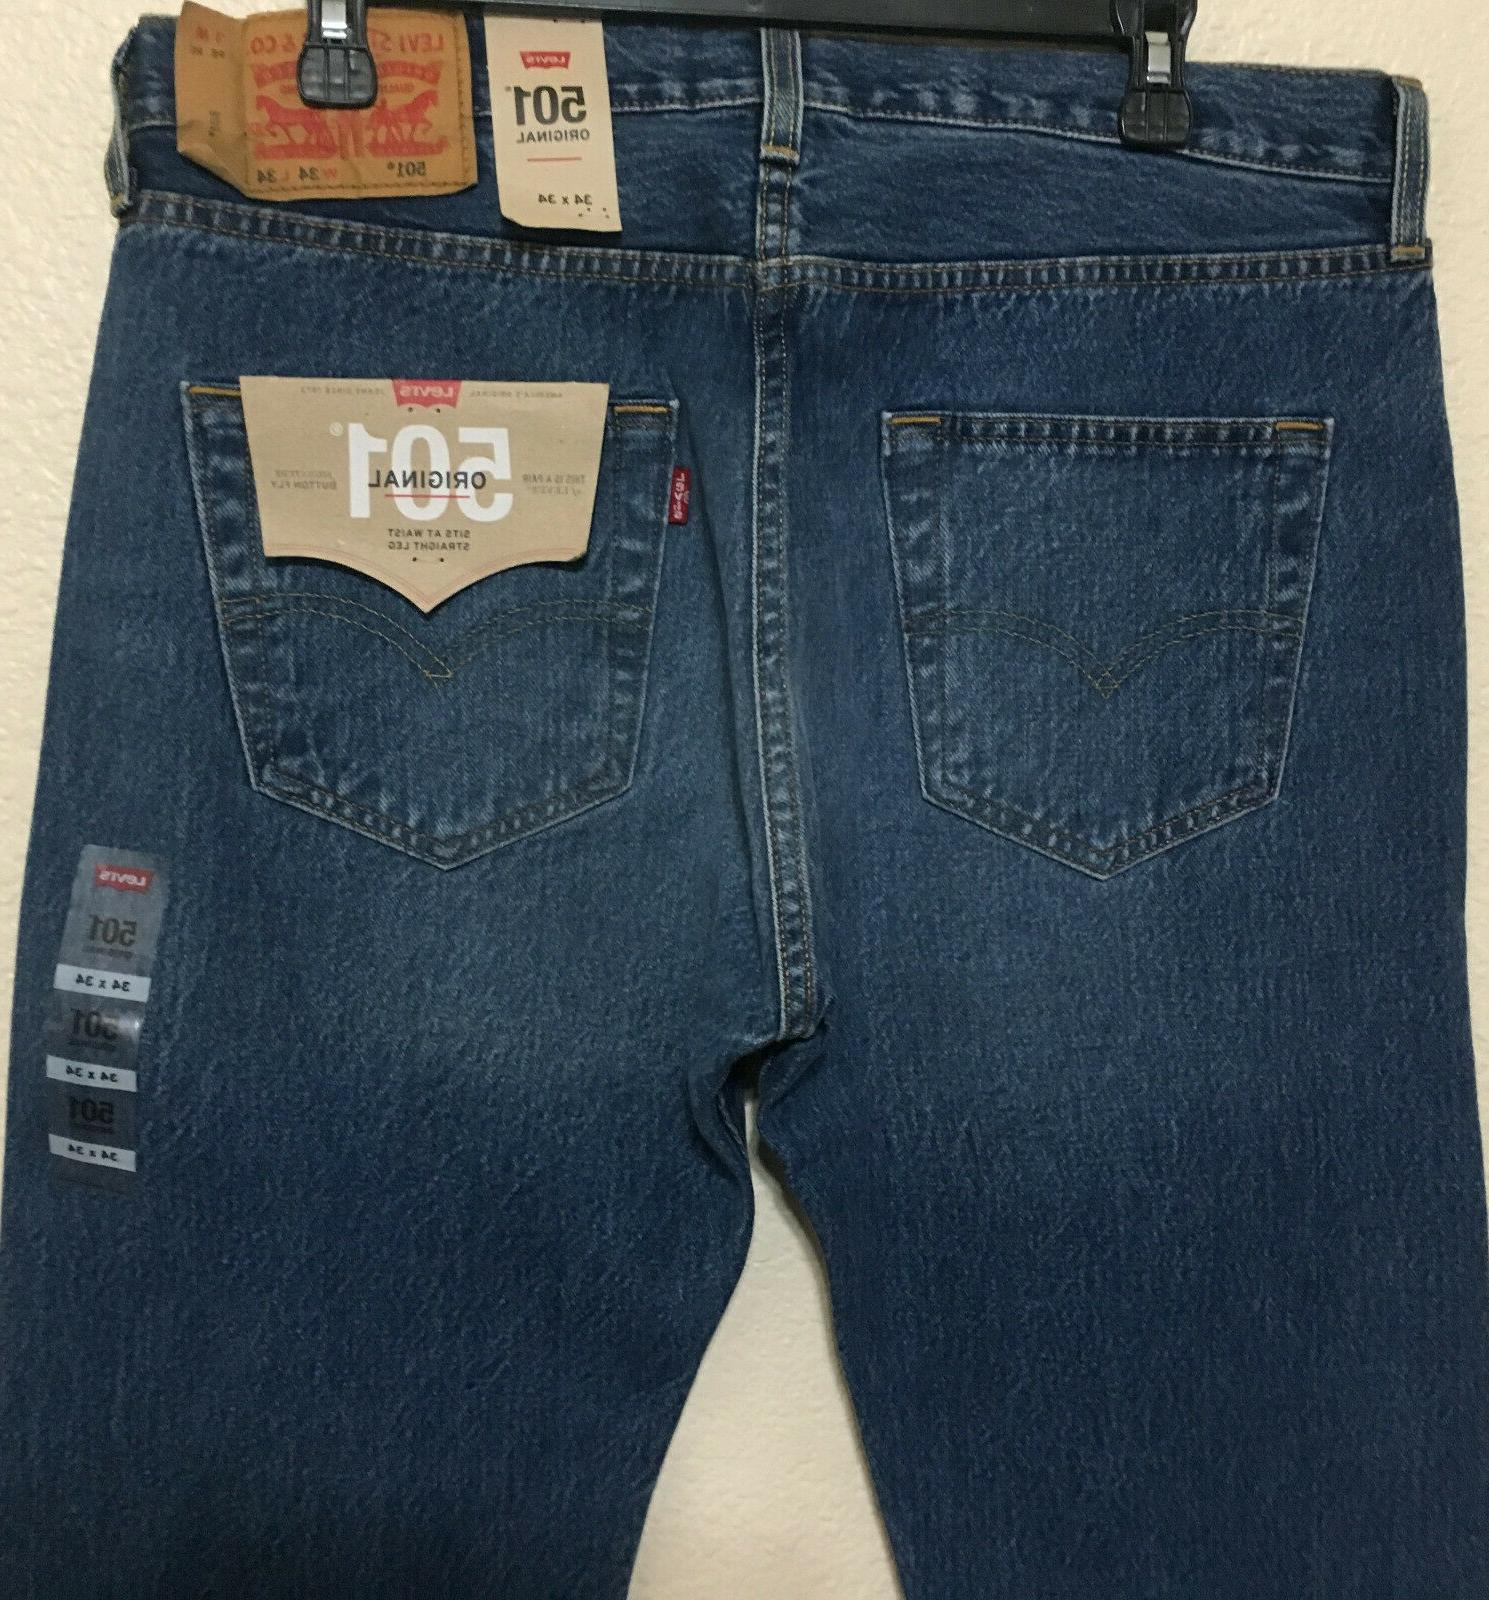 NWT MENS -2487 STRAIGHT JEANS PANT $70